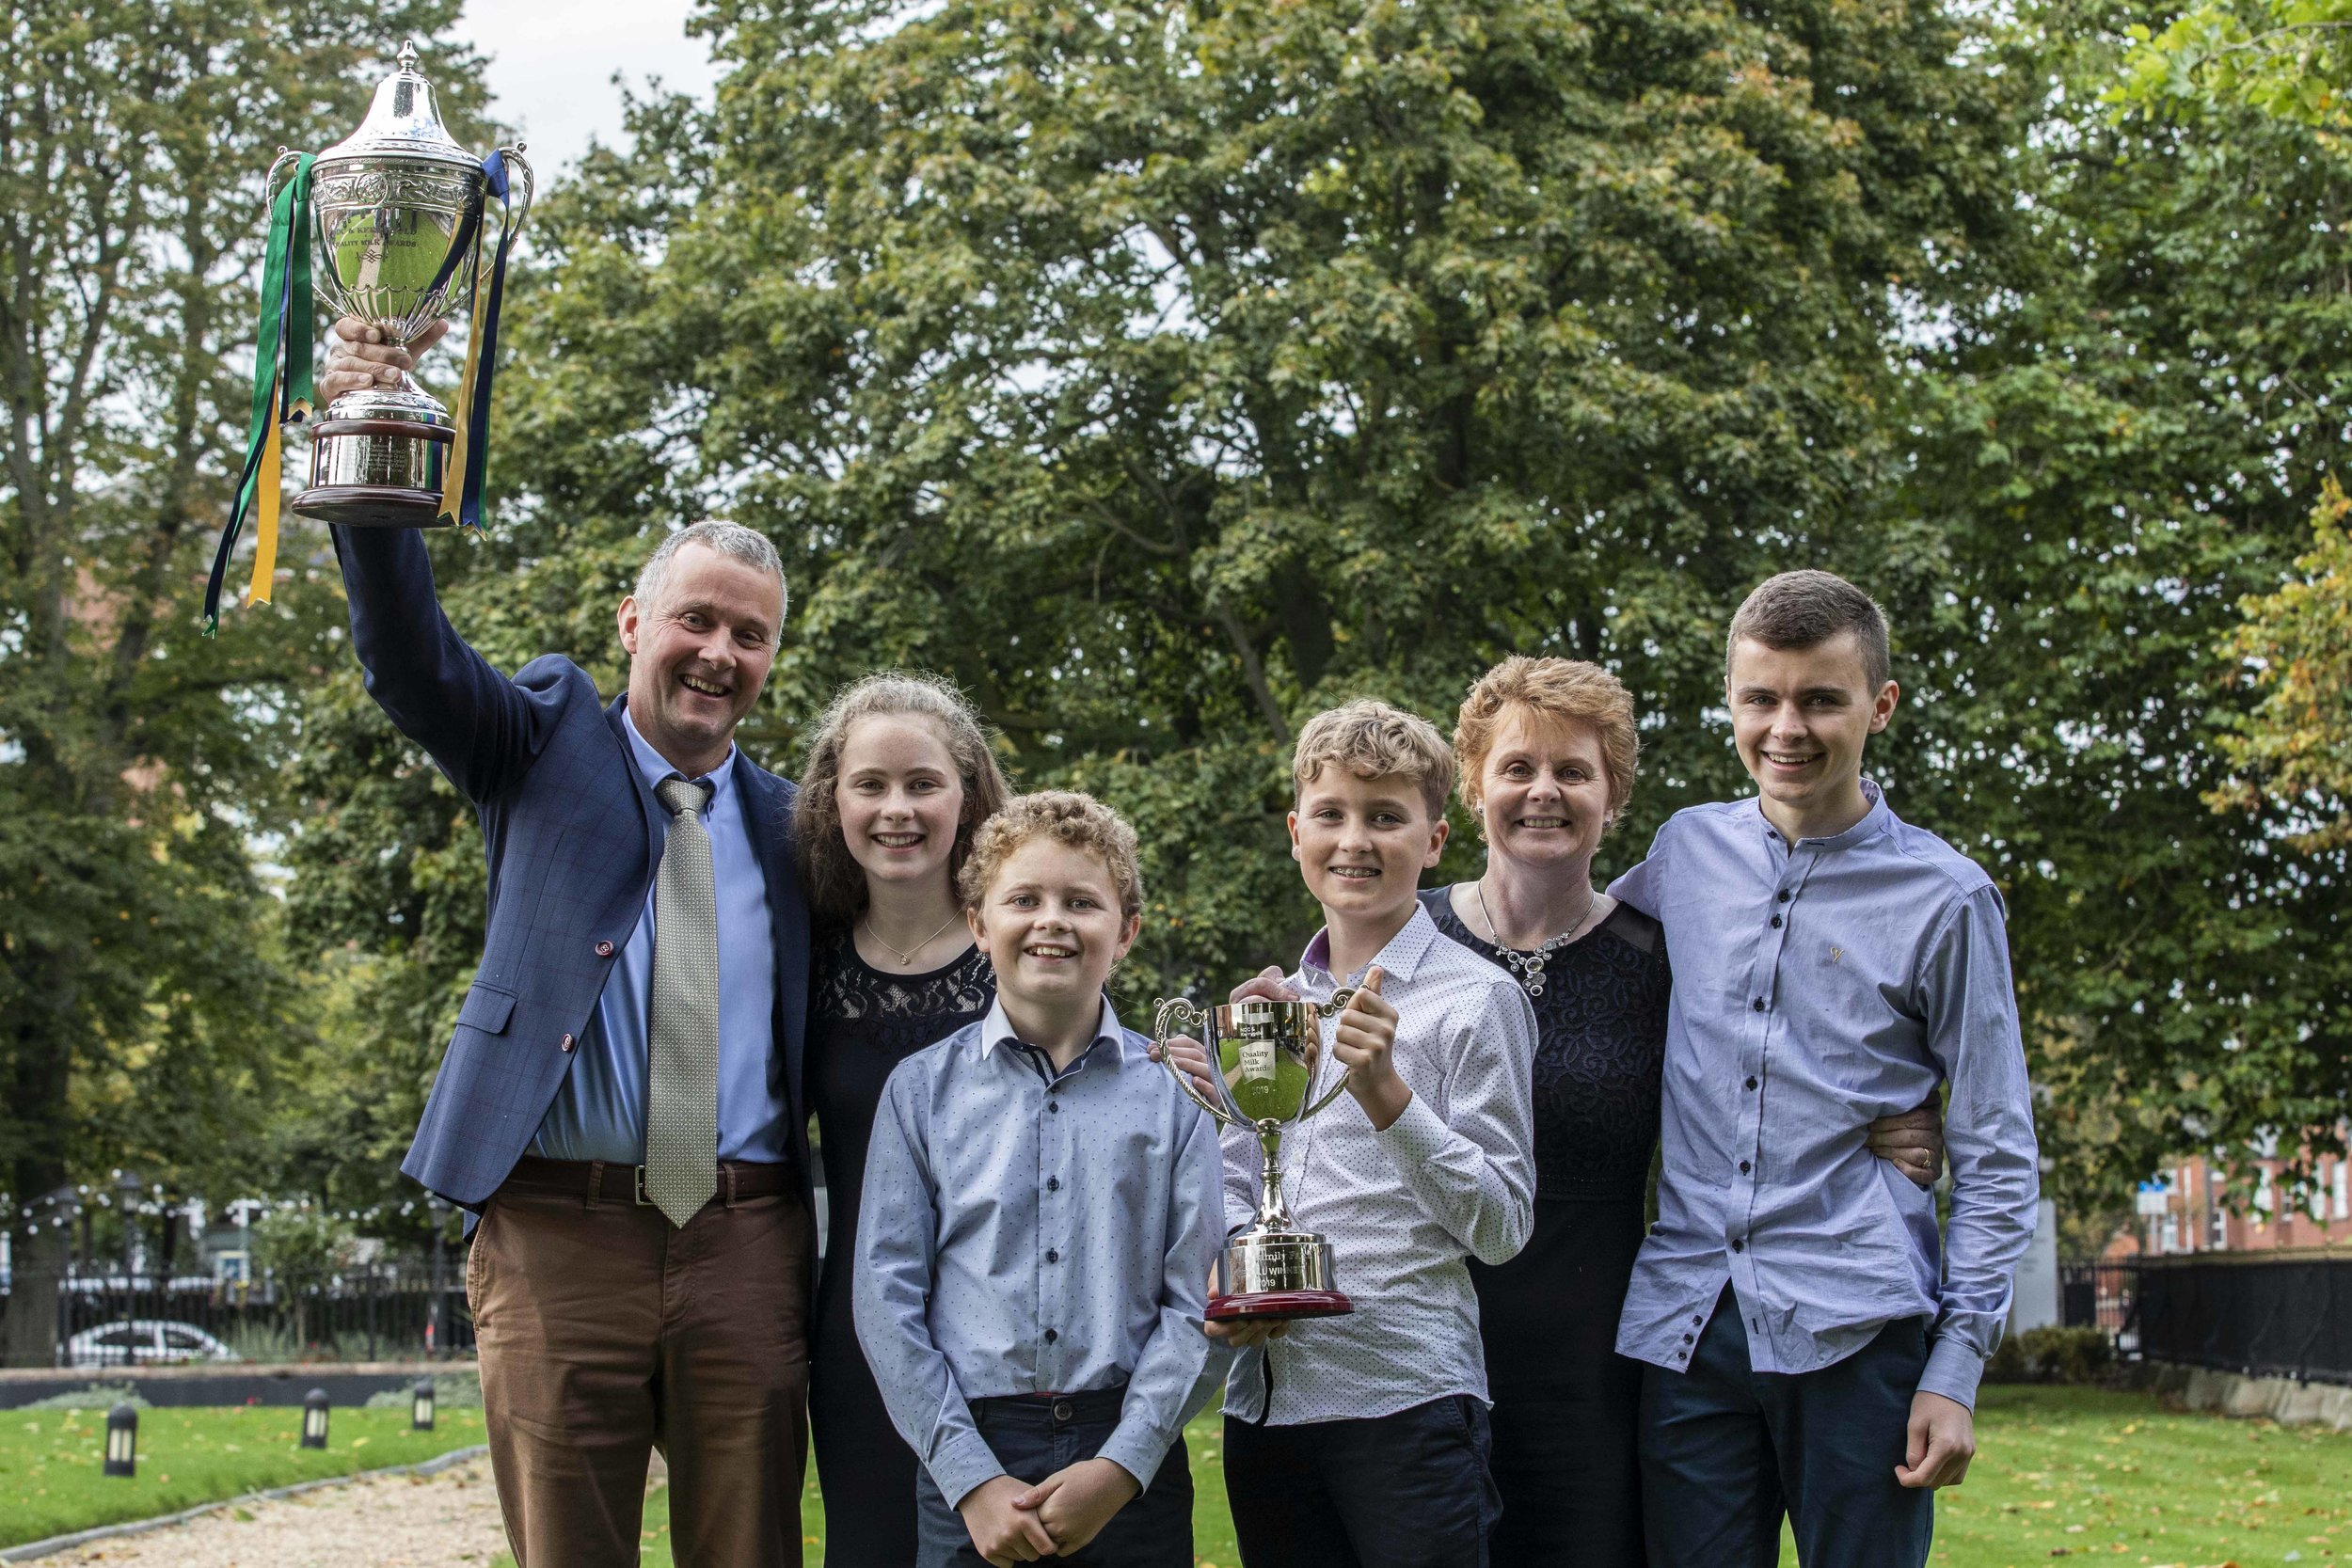 The NDC & Kerrygold Quality Milk Awards crowned the Hearne family farm as the top-quality milk producer in the country